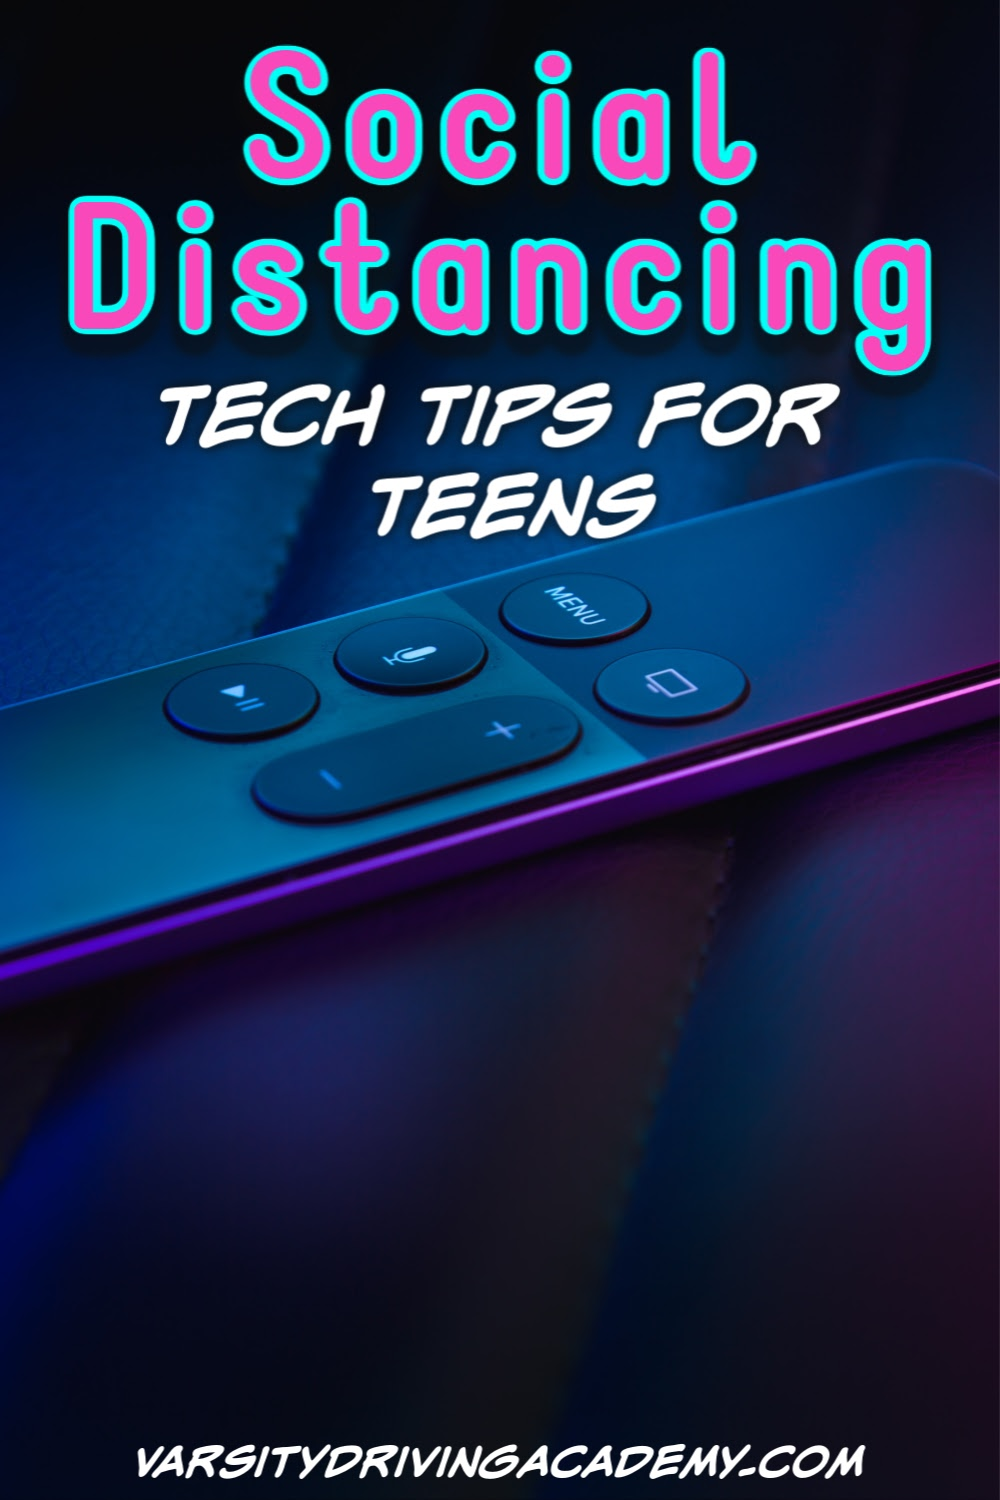 There are some very important tech tips for teens to help with social distancing and keeping a social life as much as possible.